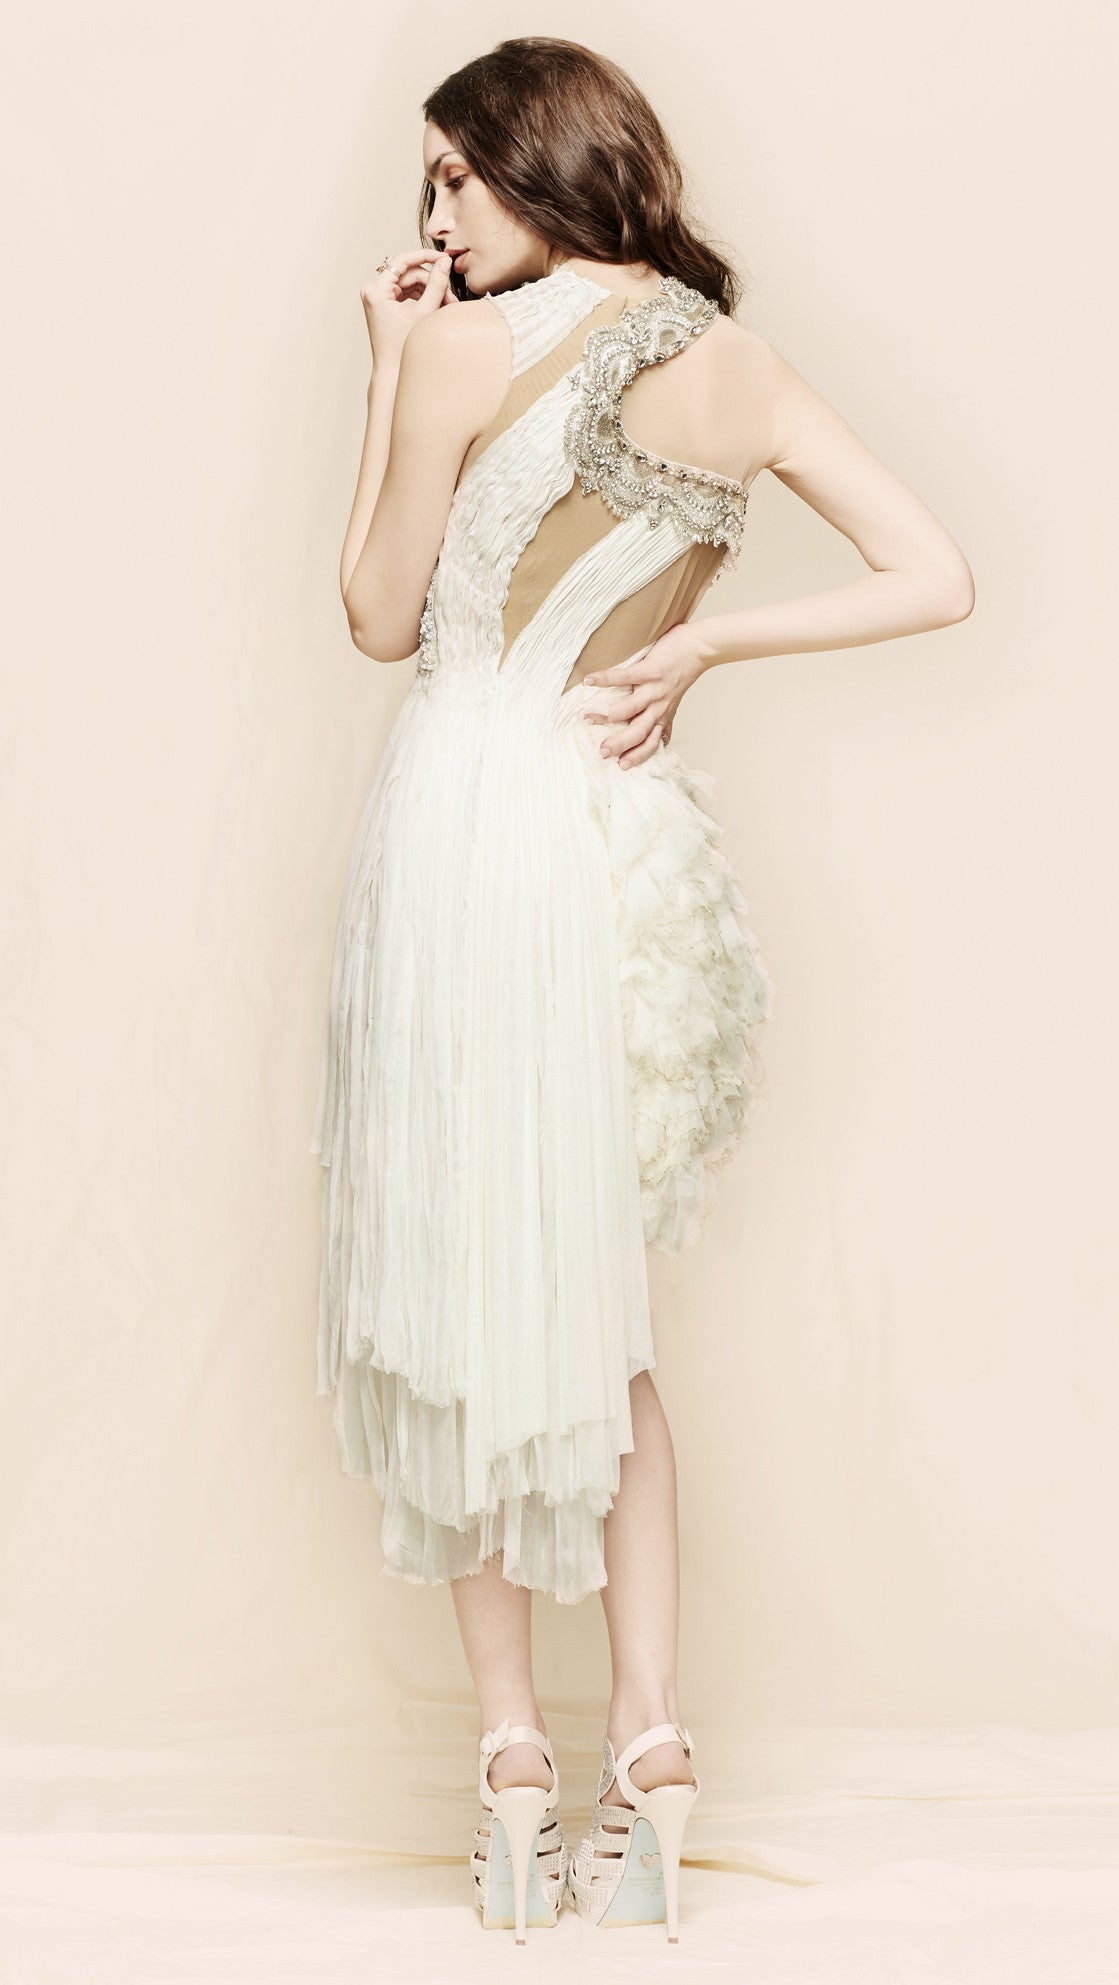 oda - forgotten kisses meringue dress - back view